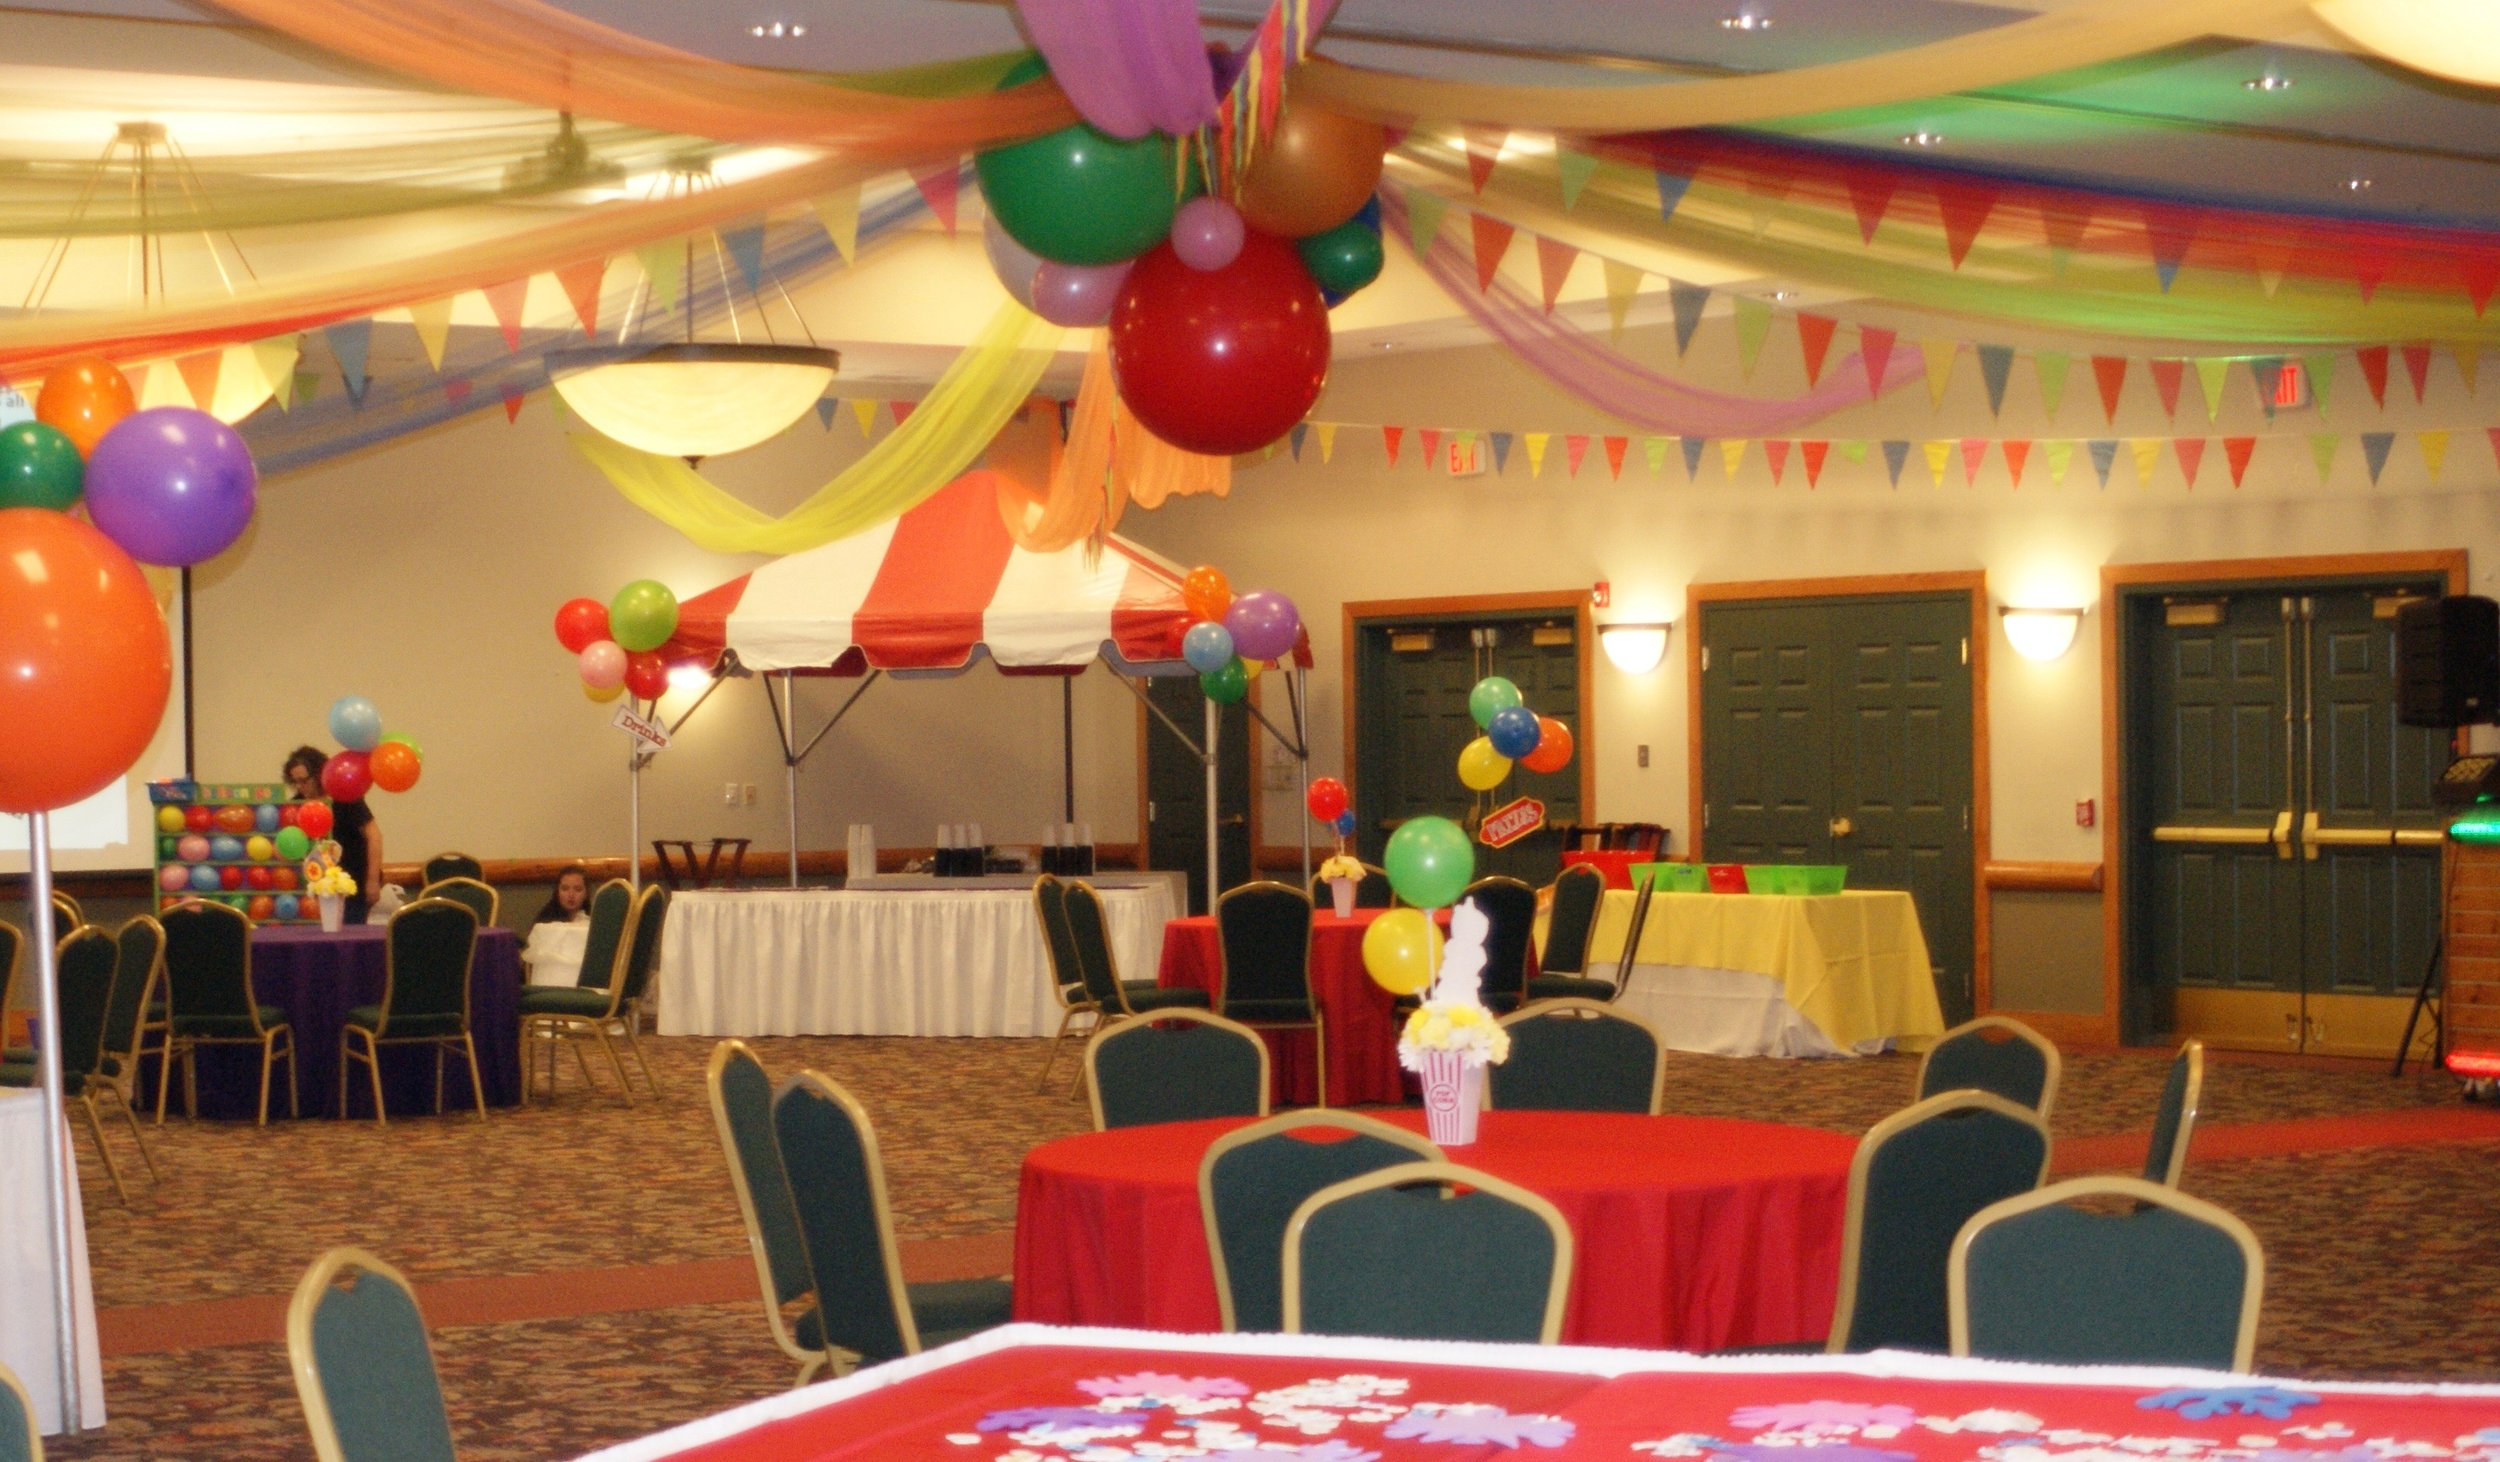 Full Carnival Room Decor.jpg